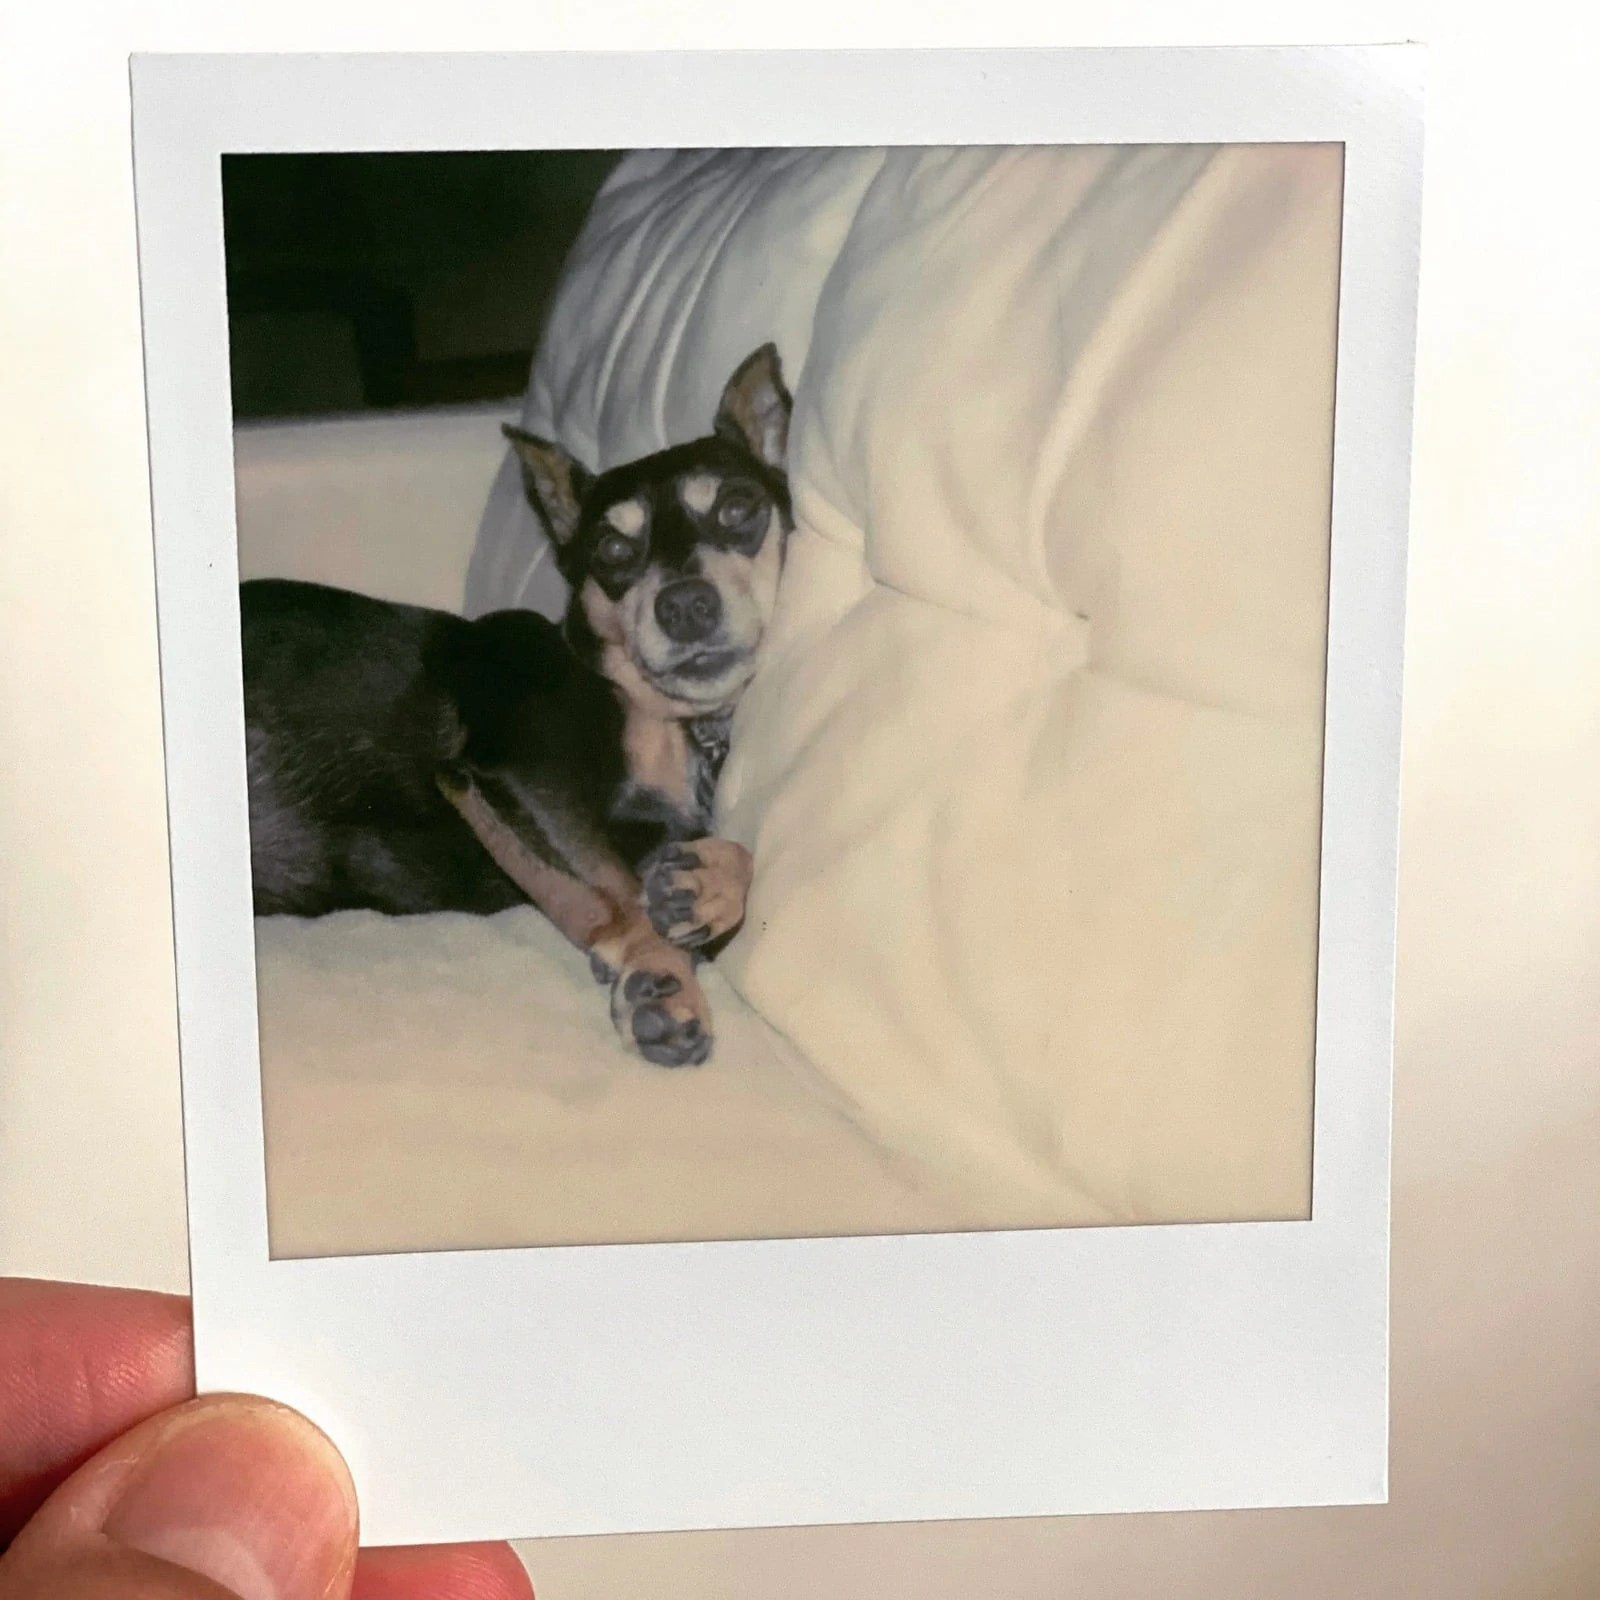 A Polaroid of Gambit, our miniature pinscher